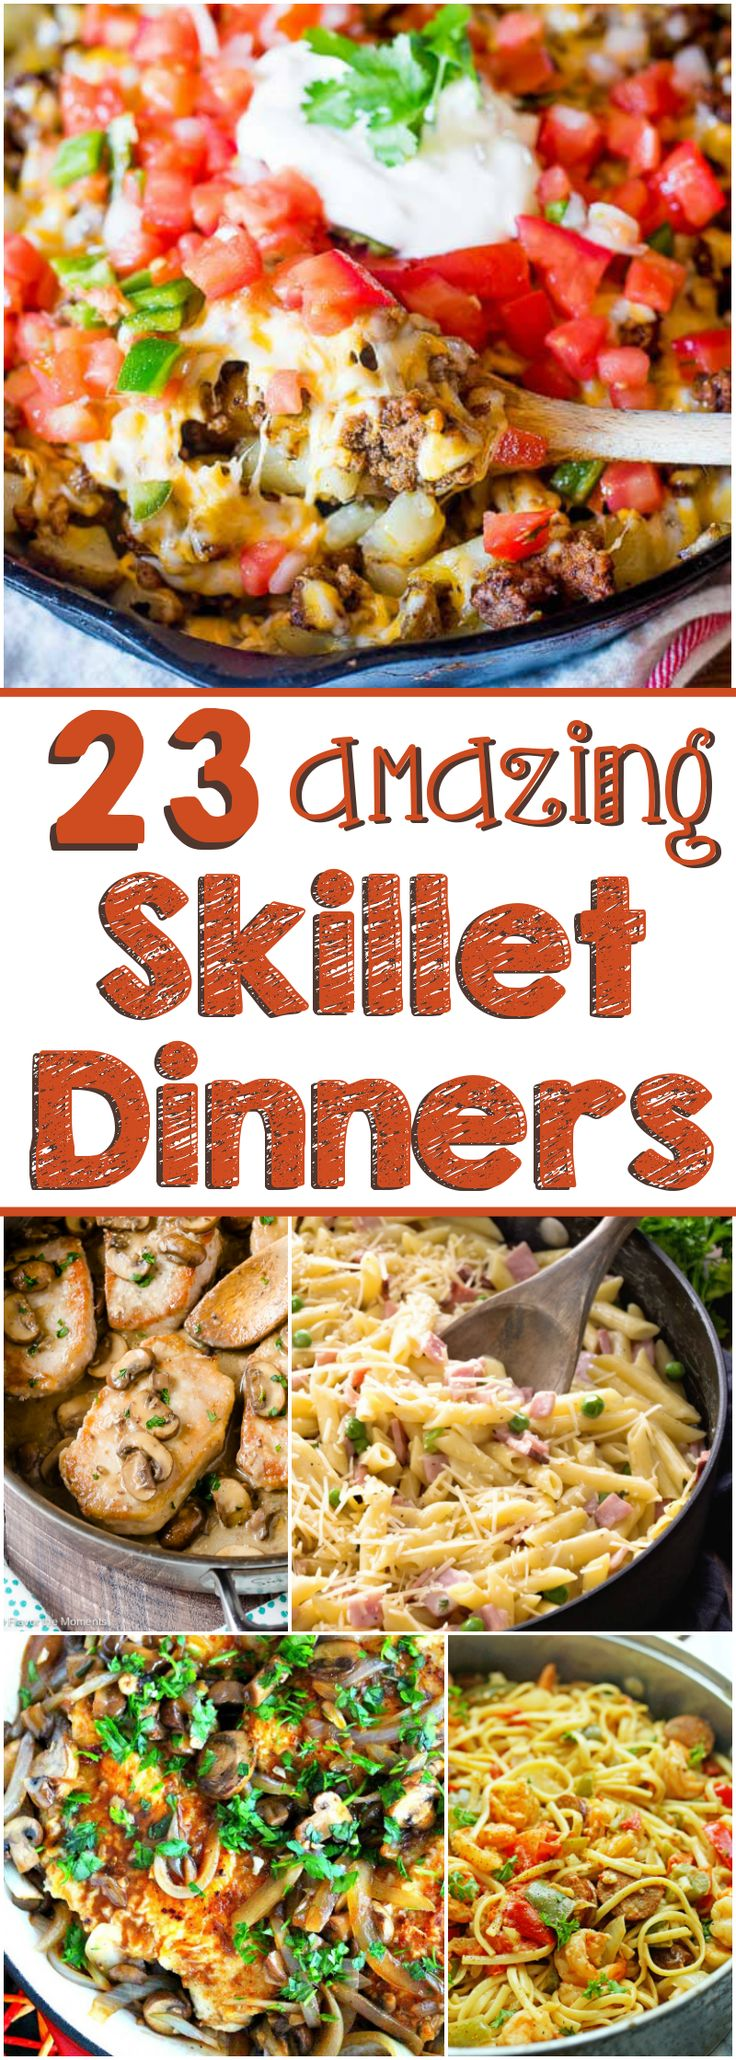 23 Amazing Skillet Dinners!! The fajita skillet and Mexican Potatoes sound amazing!!